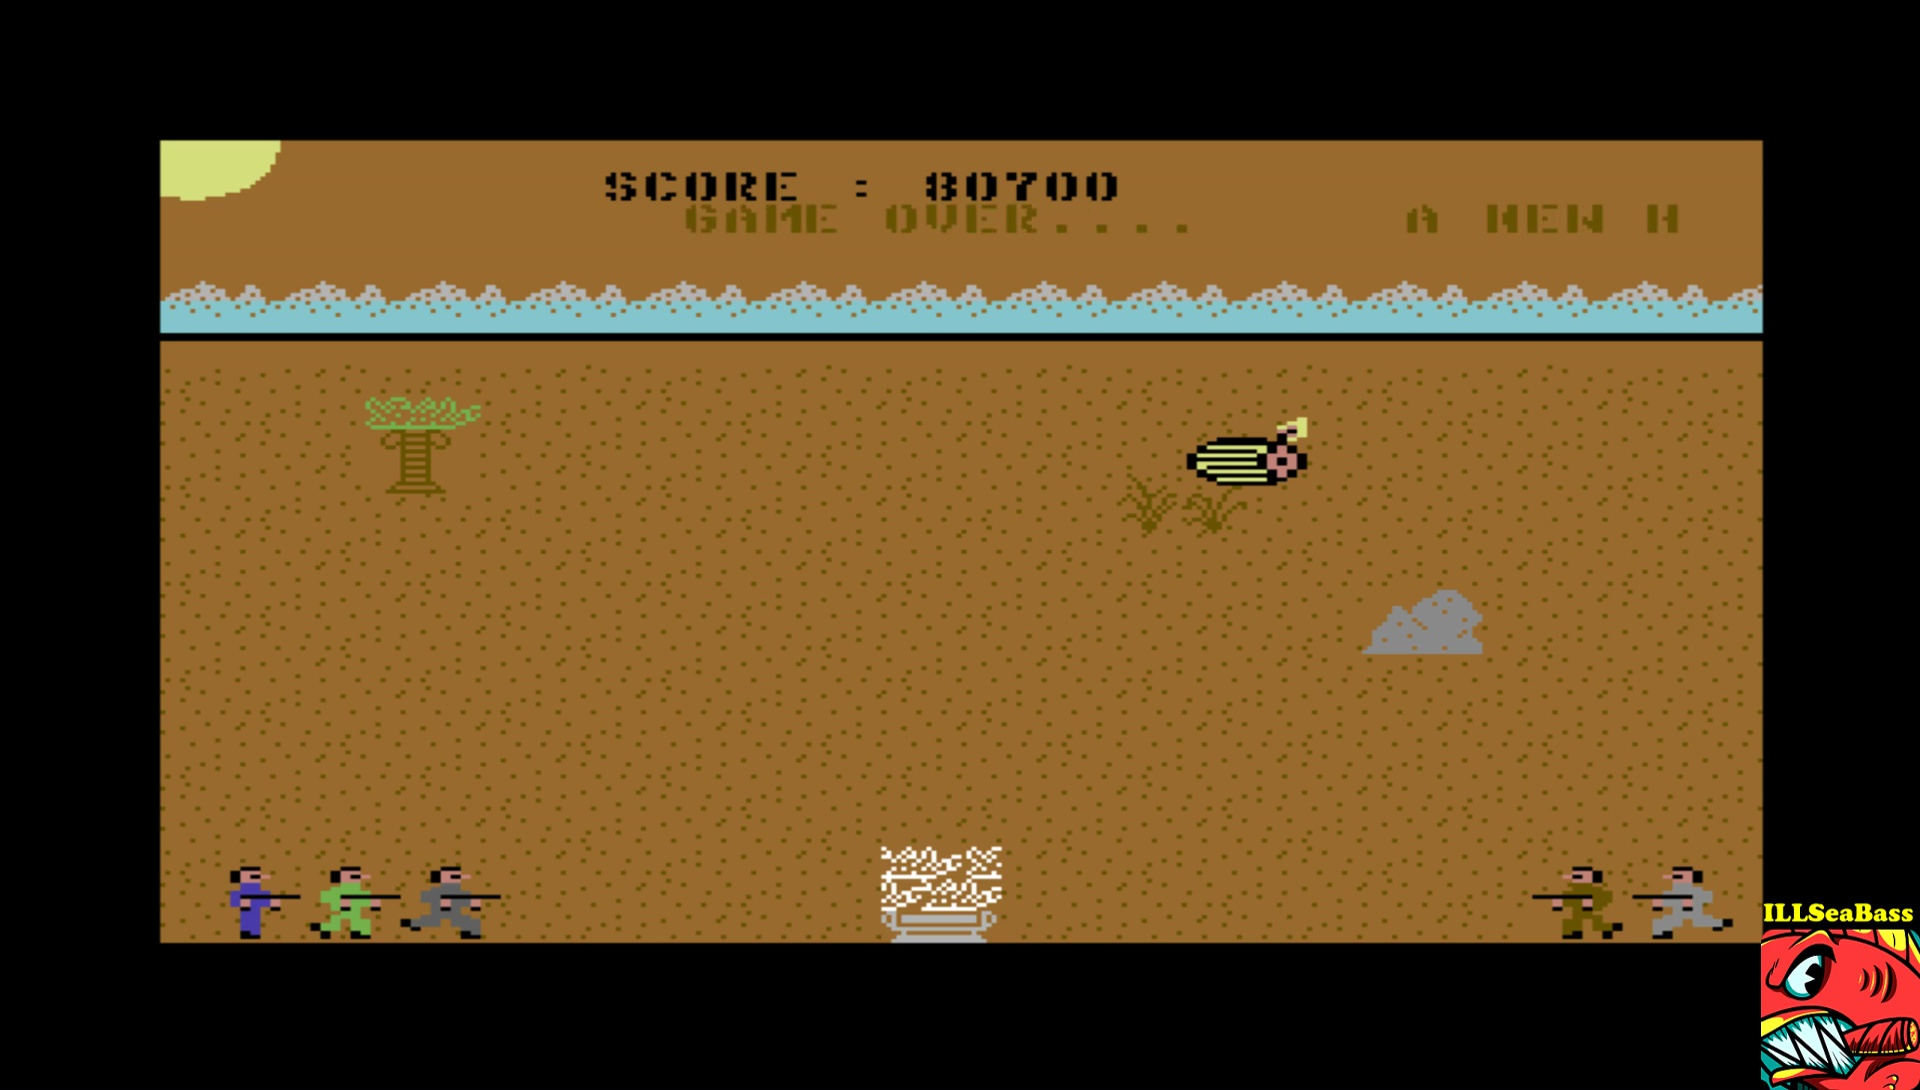 ILLSeaBass: Commando Libya (Commodore 64 Emulated) 80,700 points on 2017-04-15 10:17:25